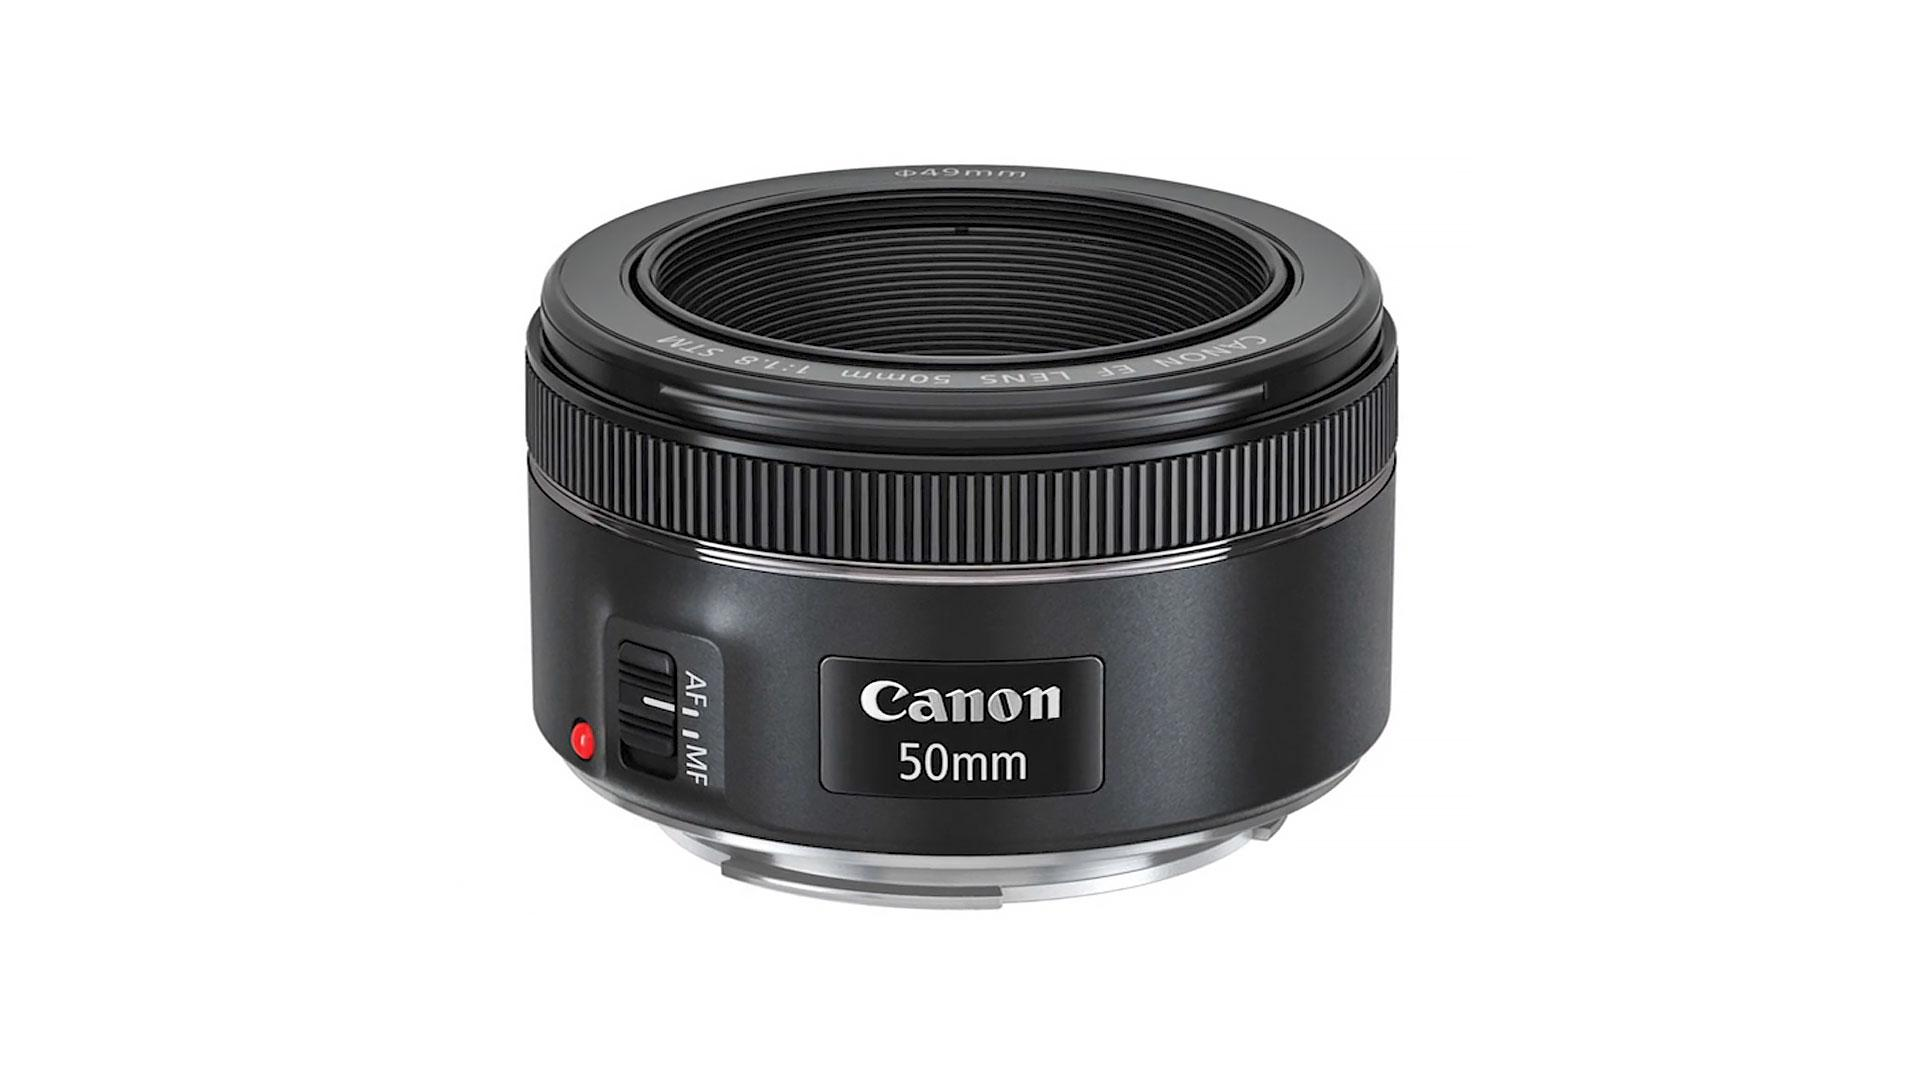 Image result for canon 50mm 1.8